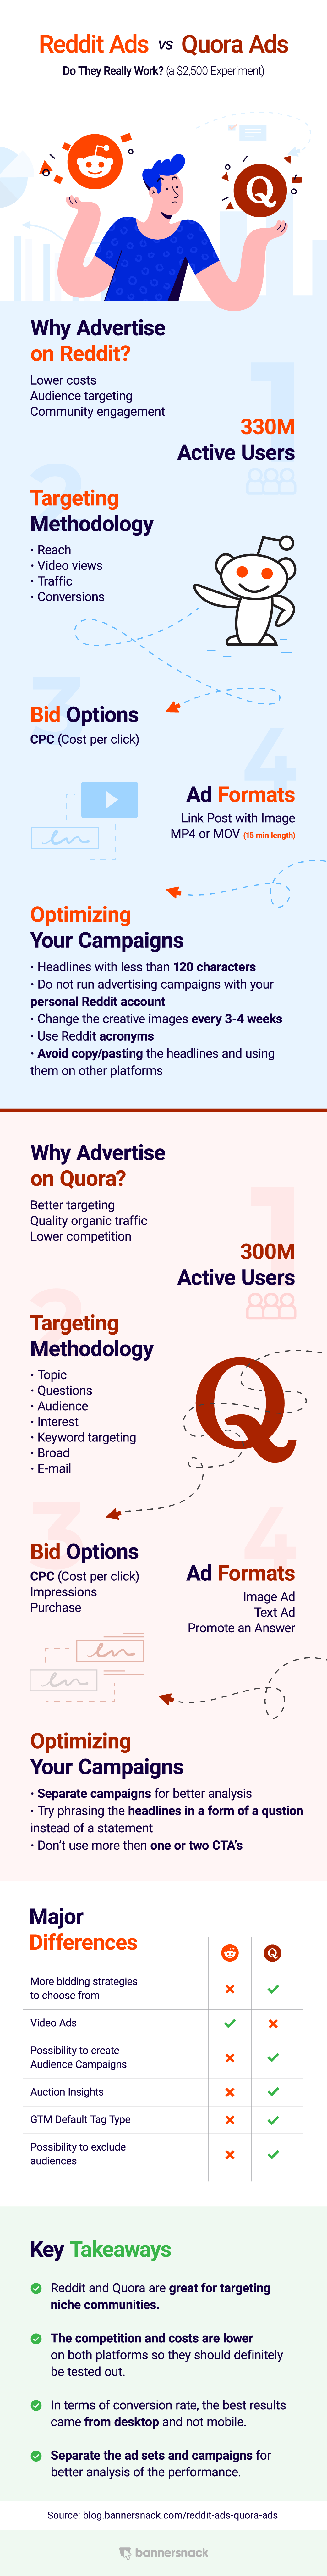 Infographic Quora Ads vs Reddit Ads